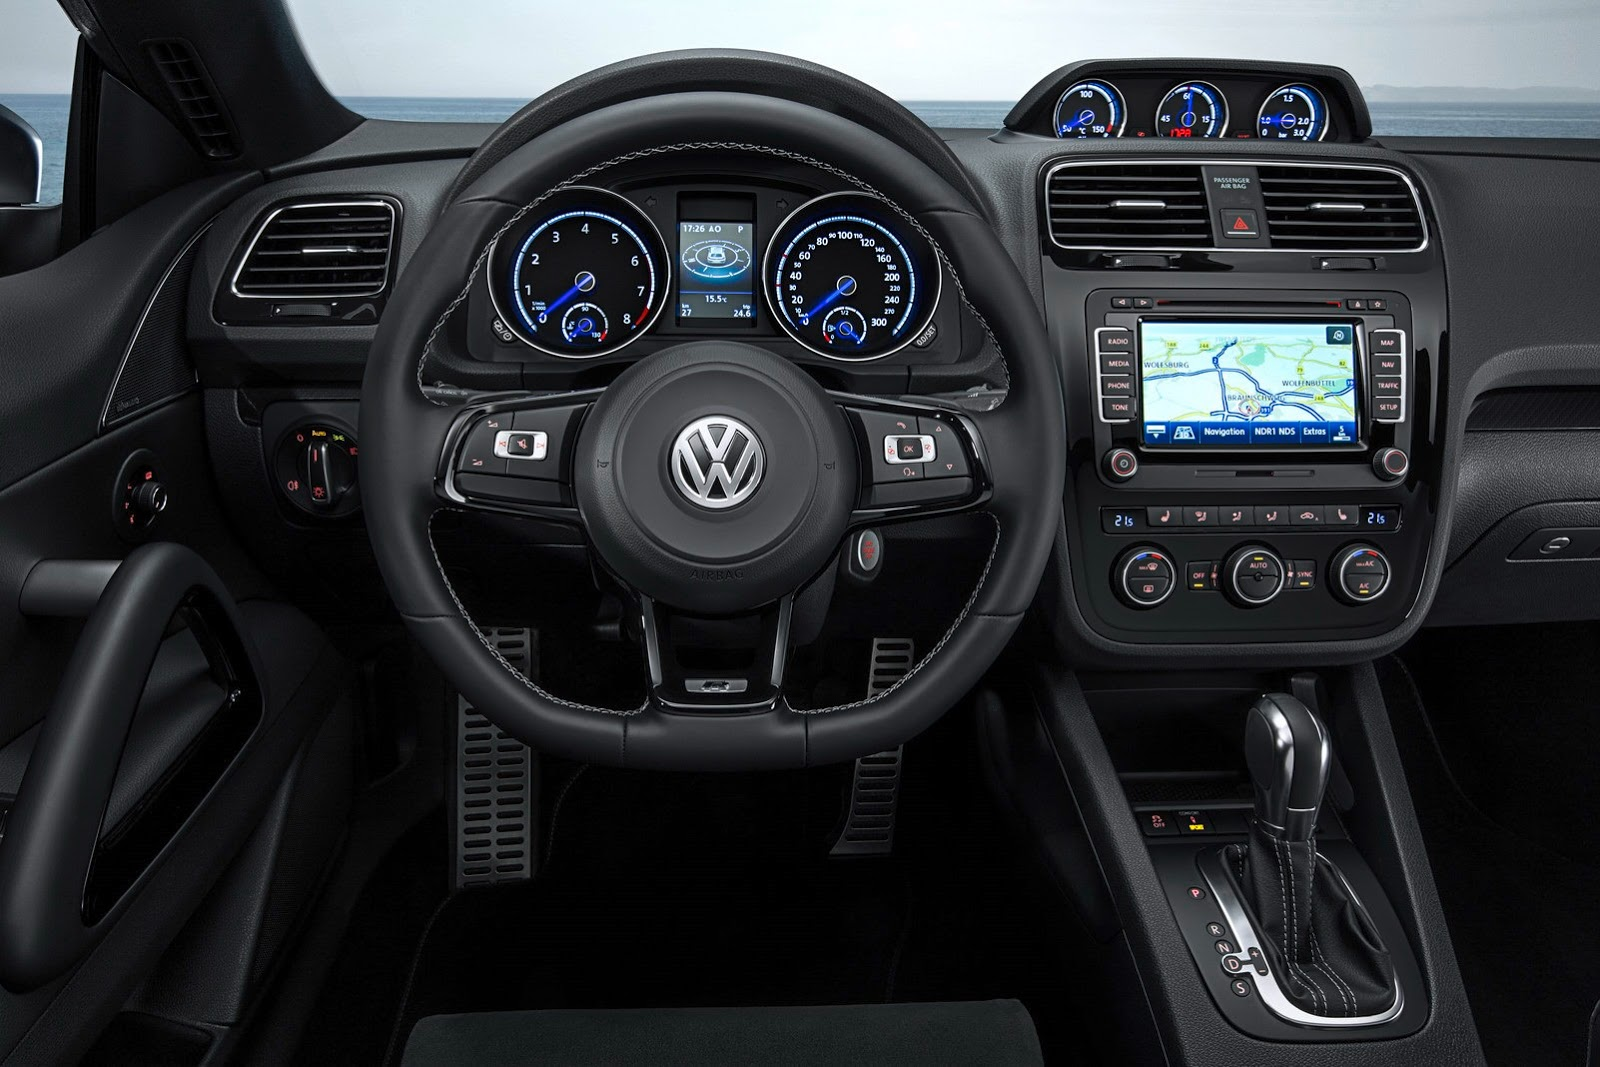 Volkswagen Cars News 2015 Scirocco R Pricing And Specifications